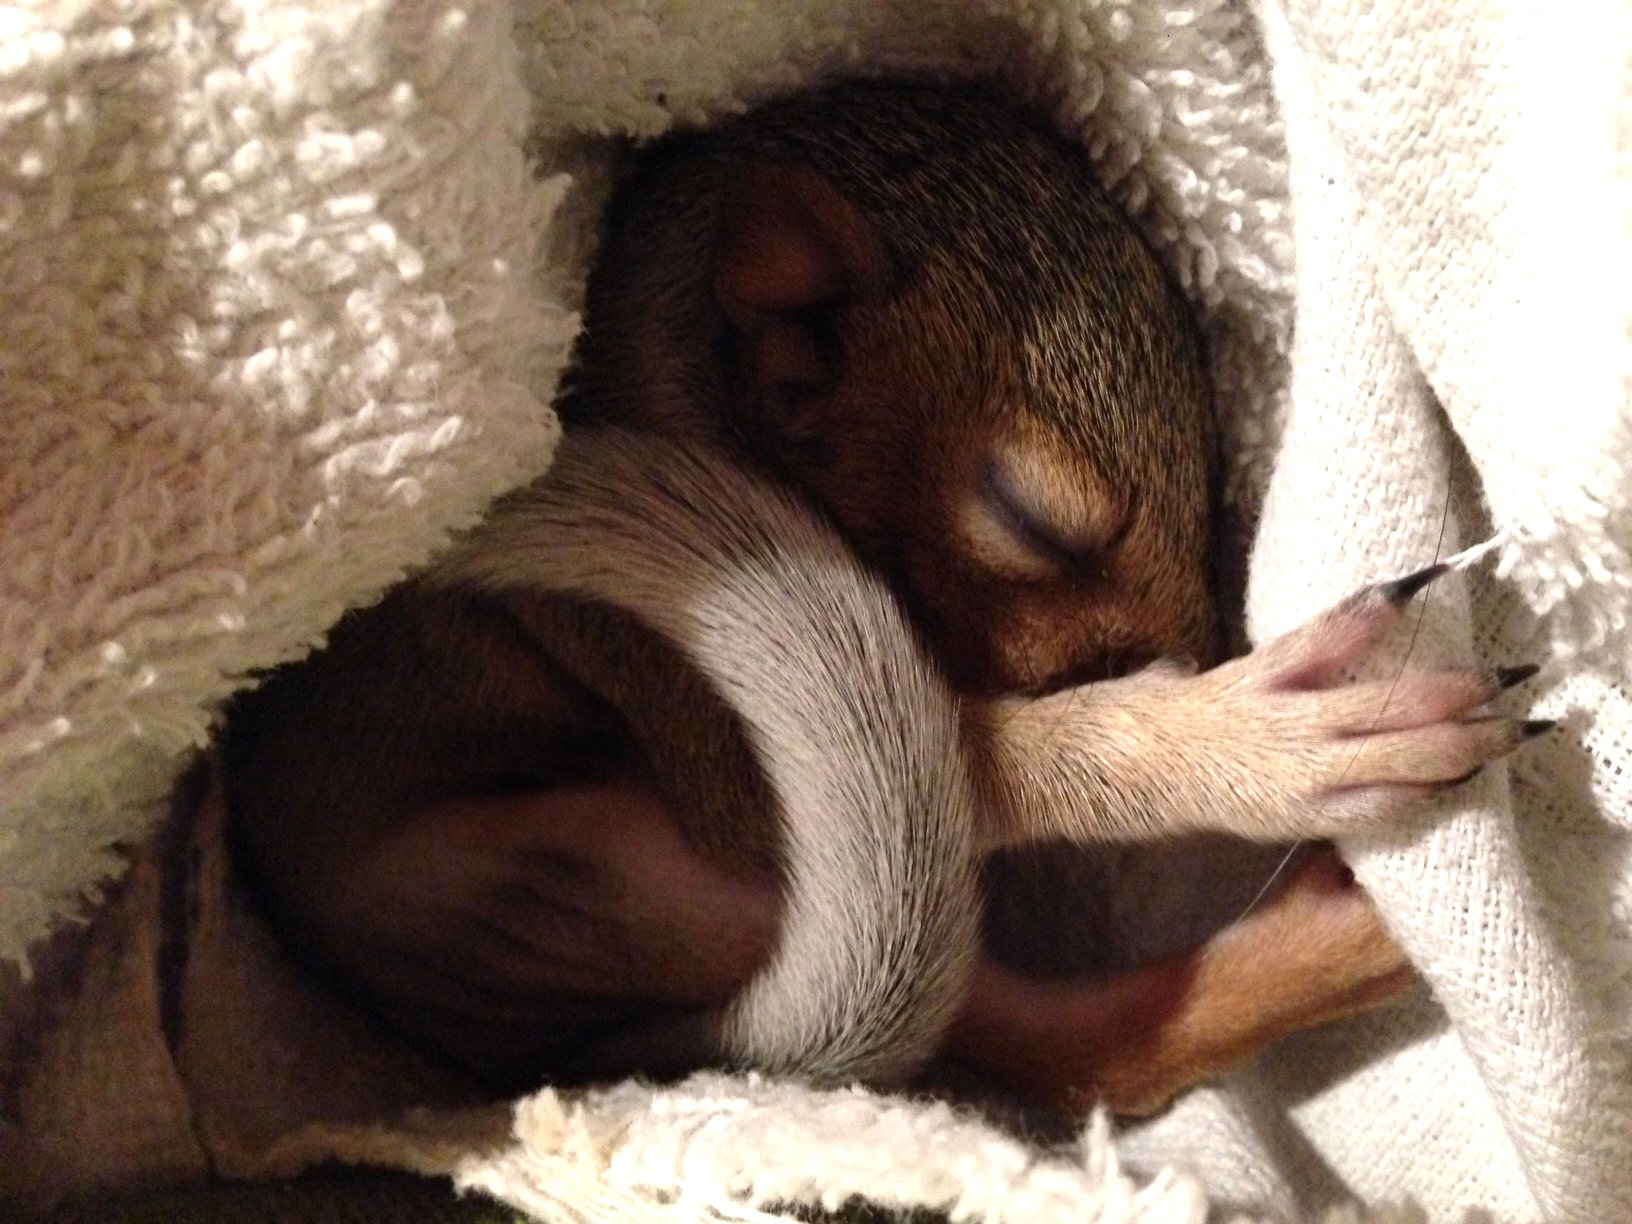 Baby_Squirrel.jpg